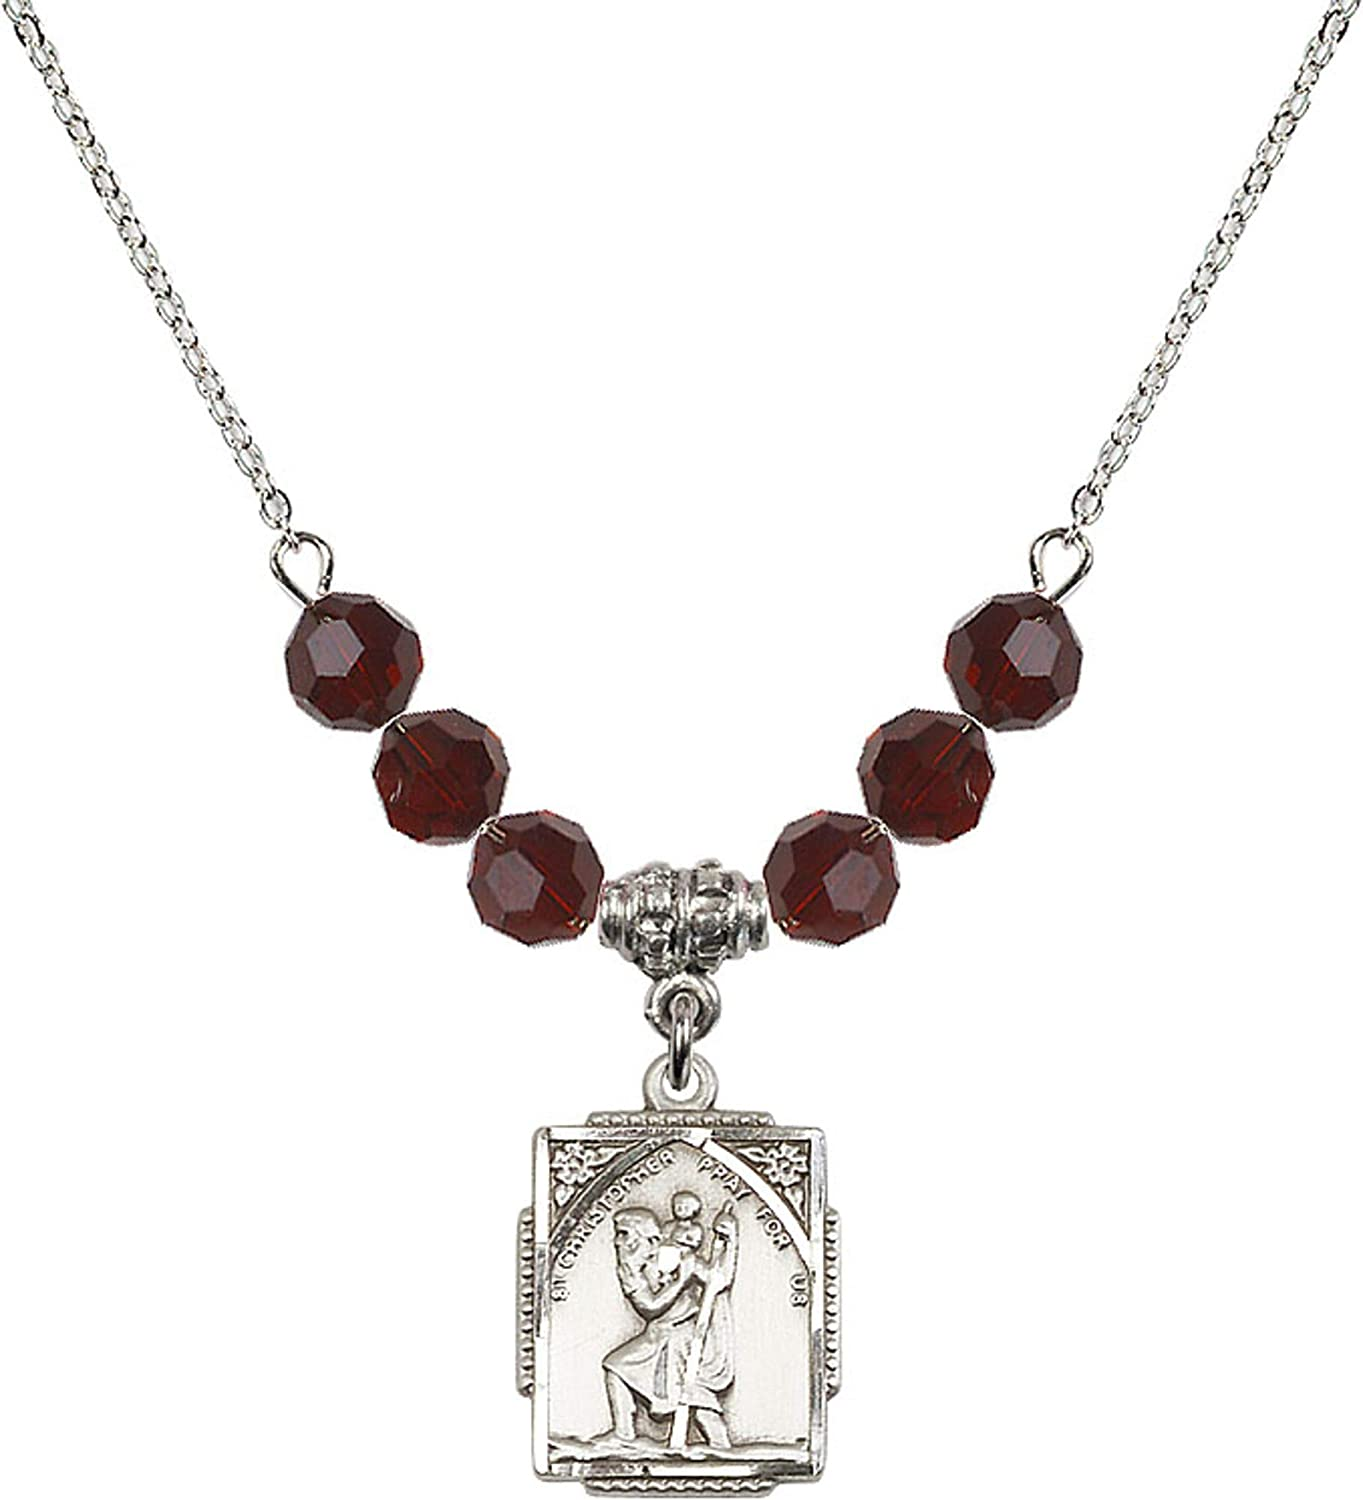 Bonyak Jewelry 18 Inch Rhodium Plated Necklace w// 6mm Red January Birth Month Stone Beads and Saint Christopher Charm